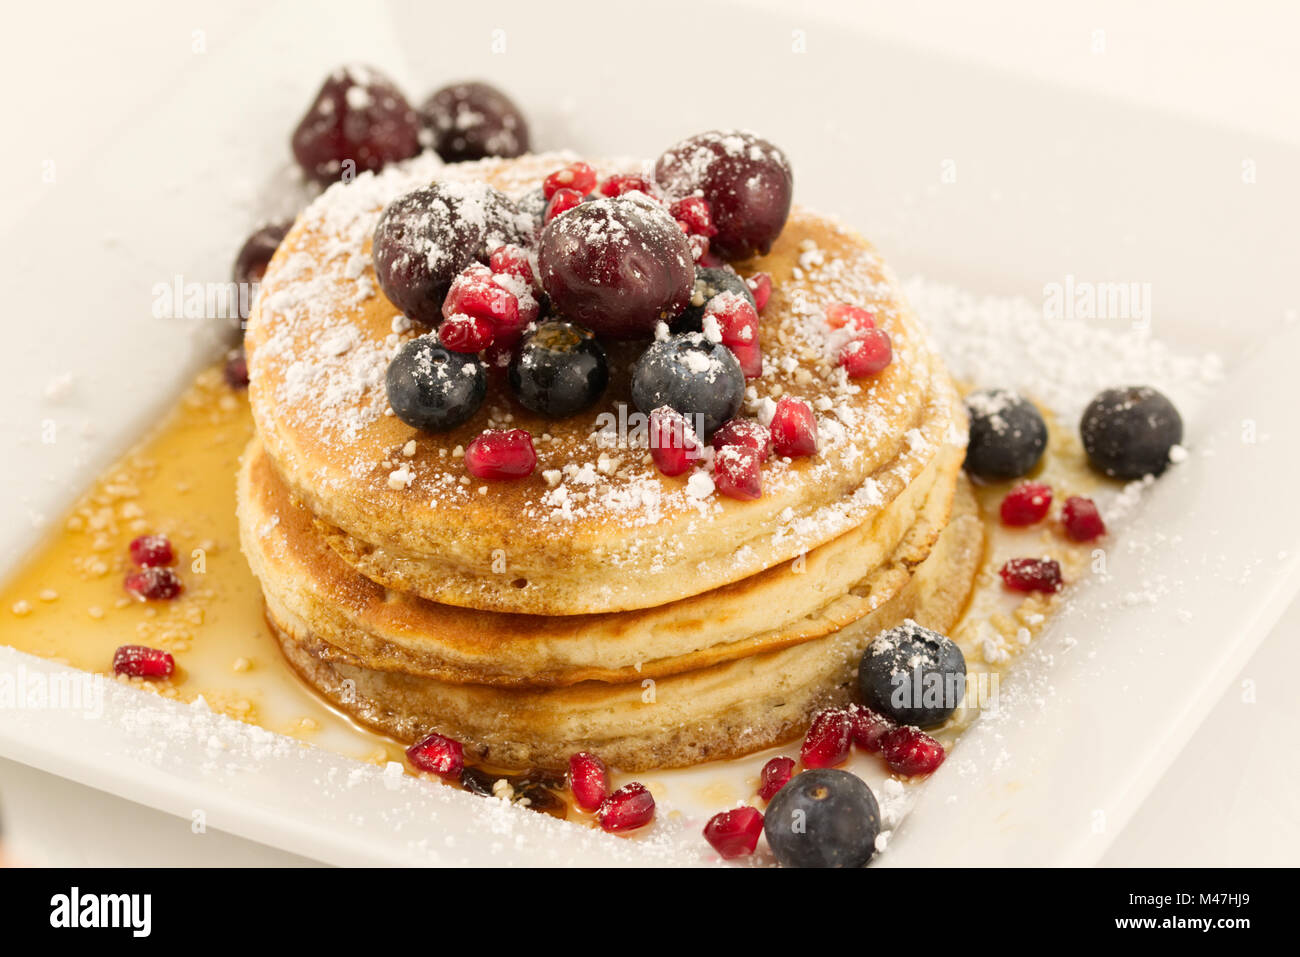 Breakfast pancakes topped with blueberries, pomegranate seeds, cherries and icing sugar (powdered sugar) and maple - Stock Image